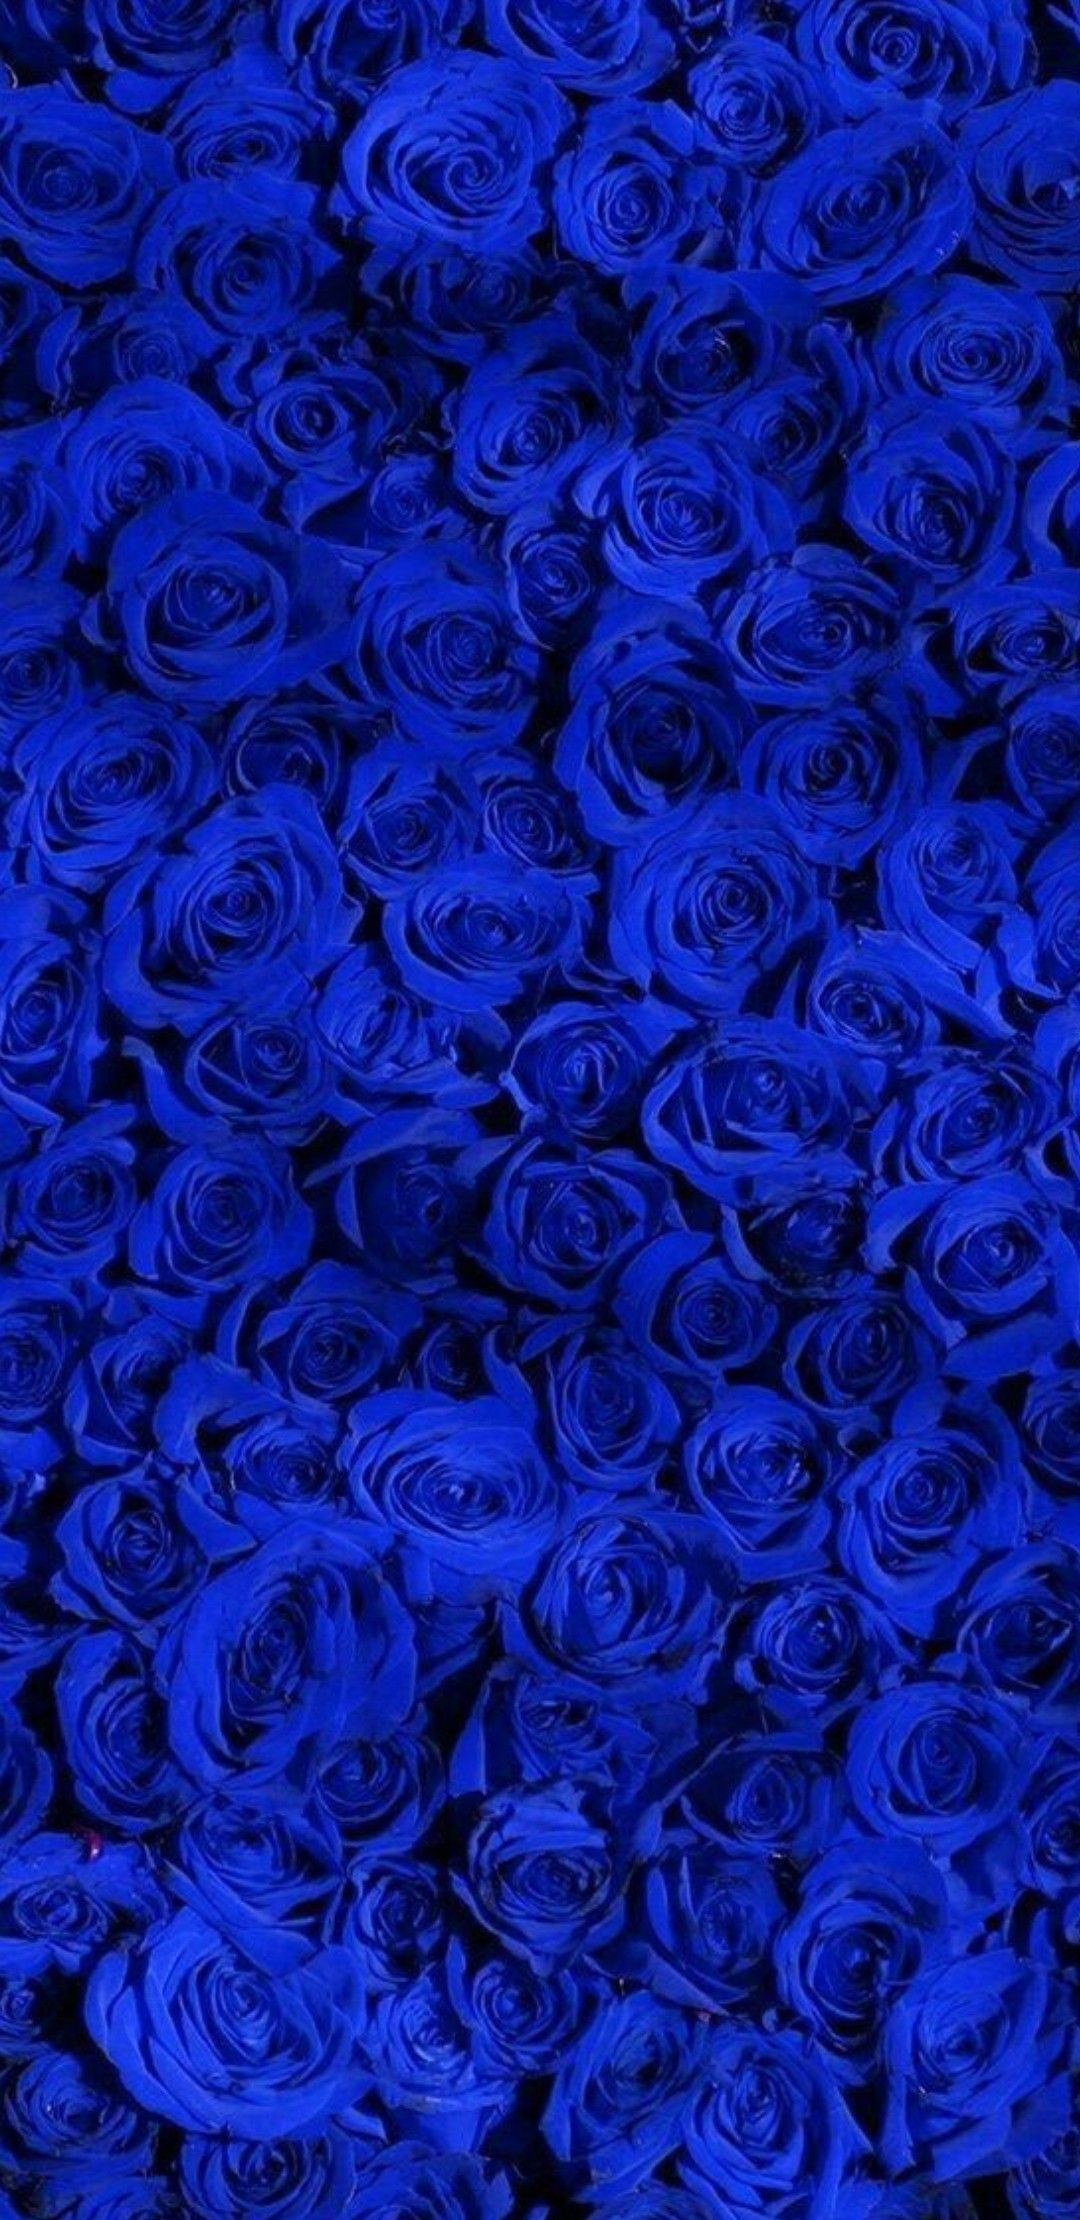 Pin By Bina On Iphone Wallpapers Blue Roses Wallpaper Blue